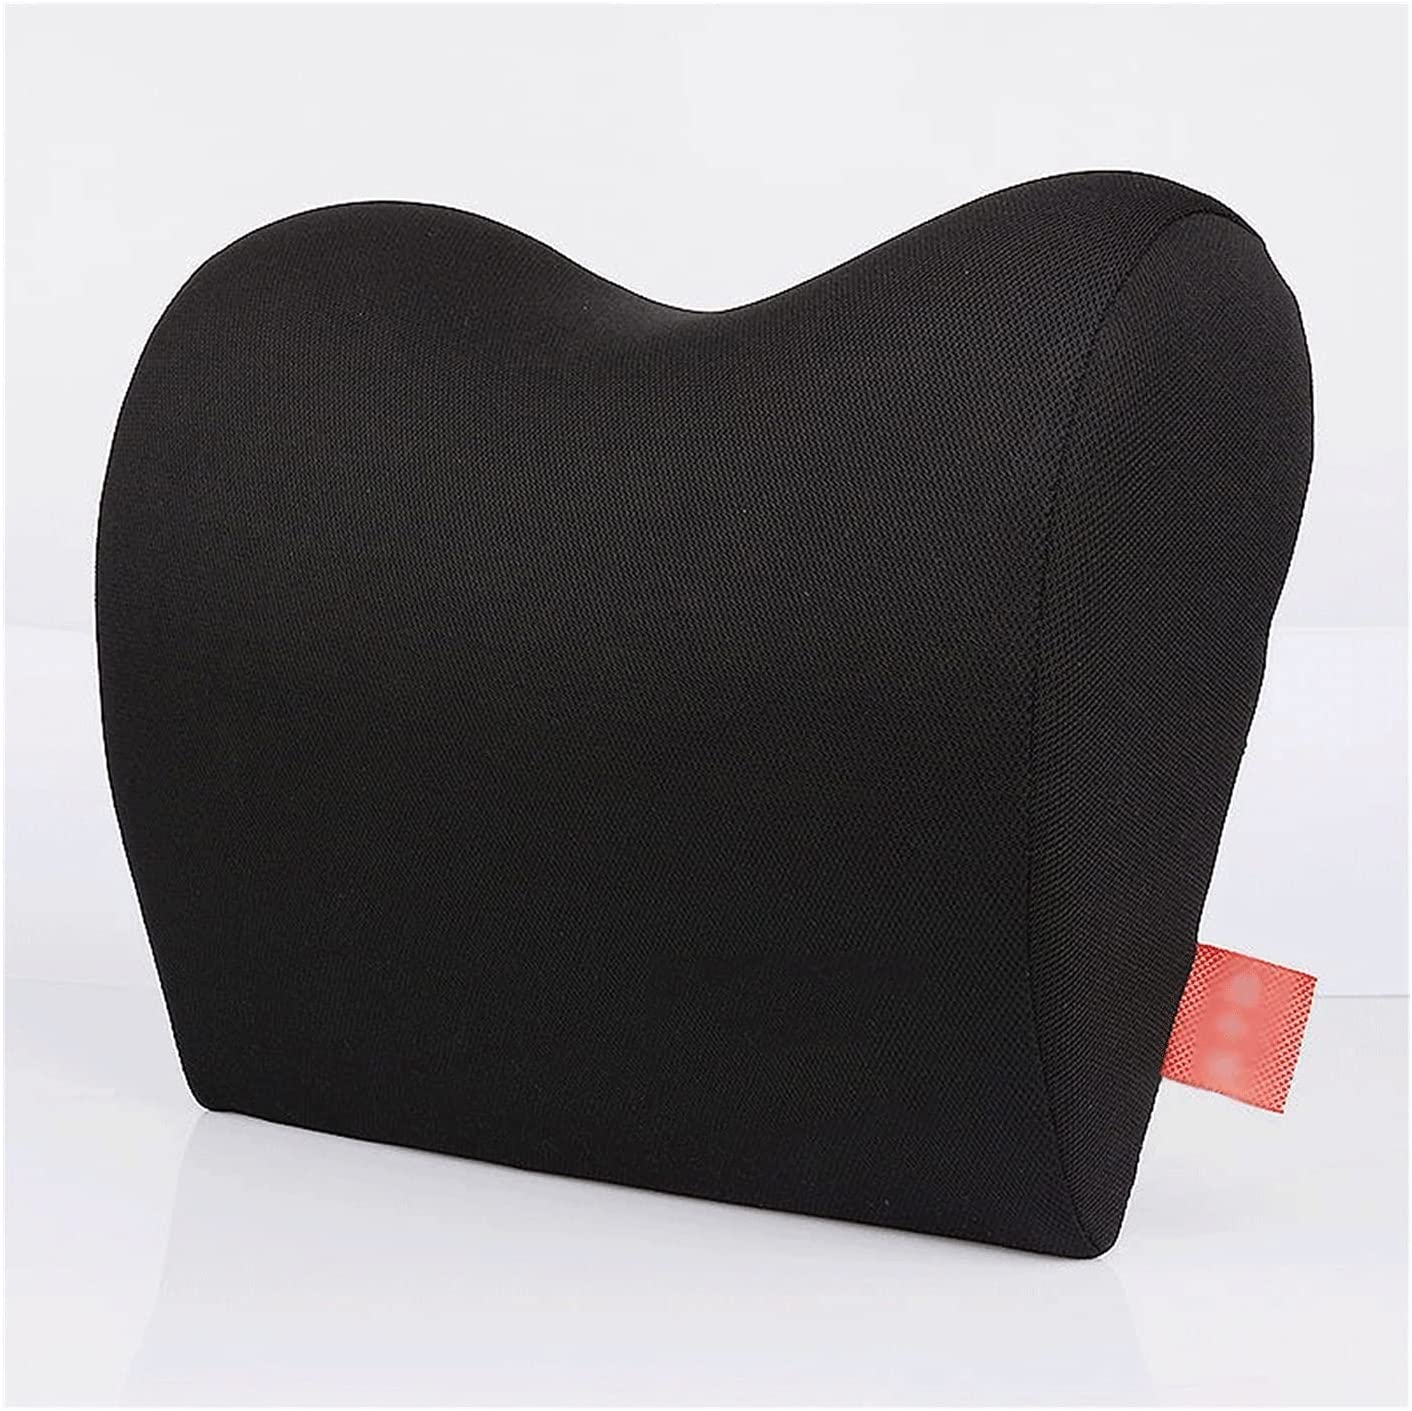 LAXH 2 Pack Car Seat Neck Directly managed store Headrest OFFer Softness fo Pillow